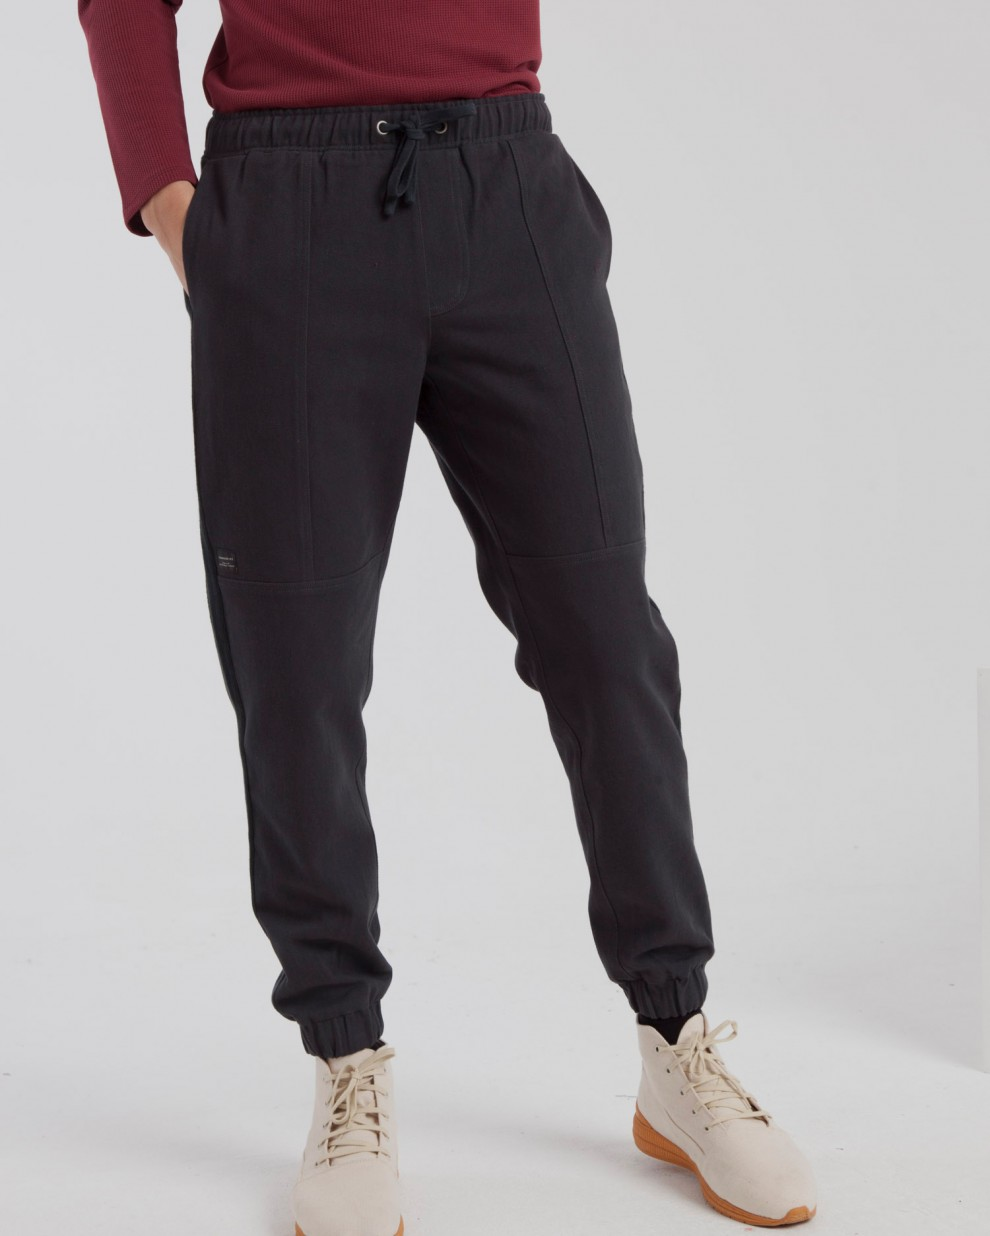 Phantom Europe Retro Pant